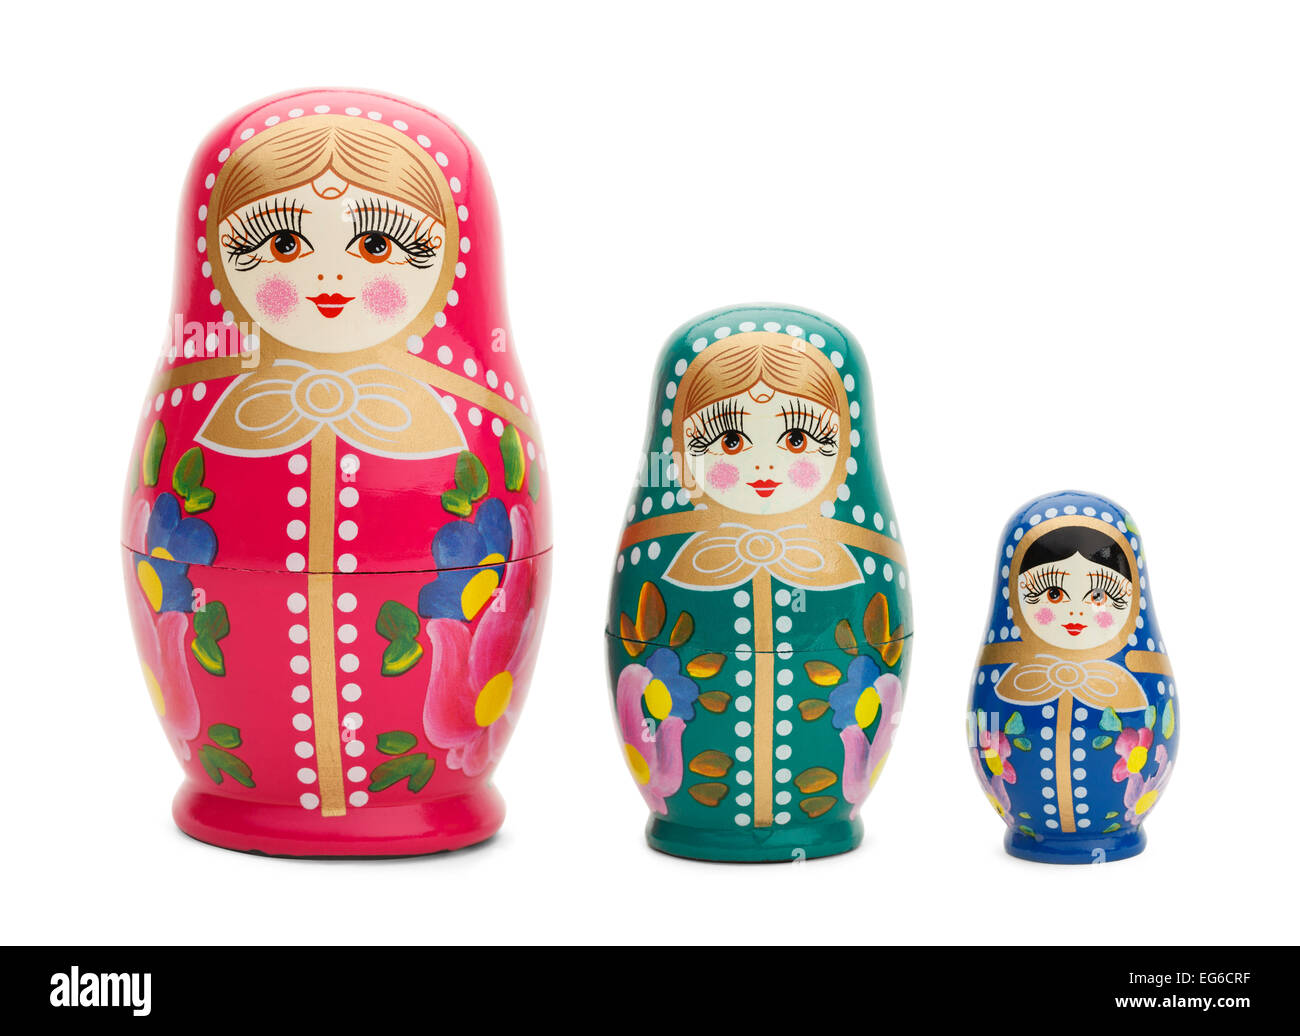 Three Traditional Russian Wood Dolls Isolated on White Background. - Stock Image